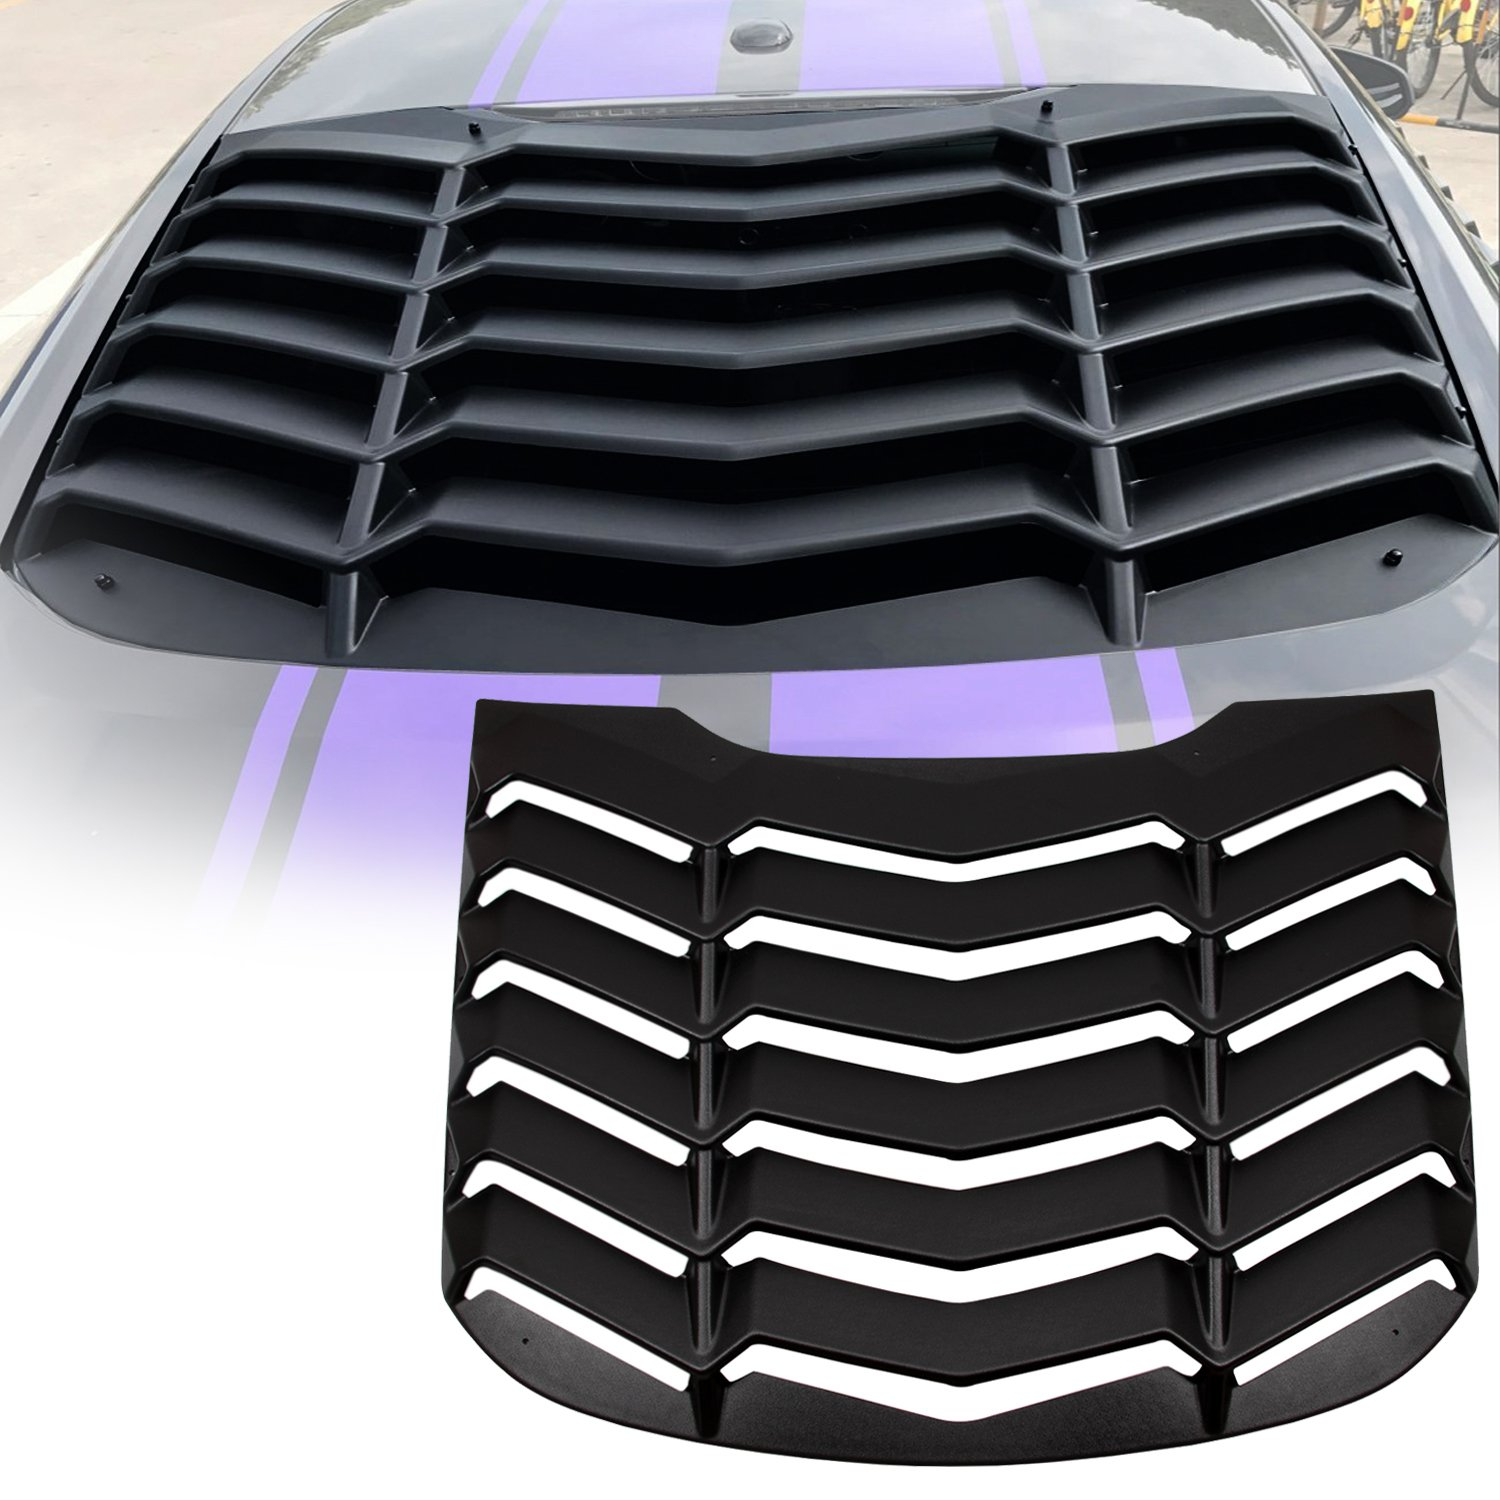 Yoursme Rear Window Louvers Matte Black ABS Window Scoop Sun Shade  Windshield Cover in Lambo Style 7b23f3d15c4